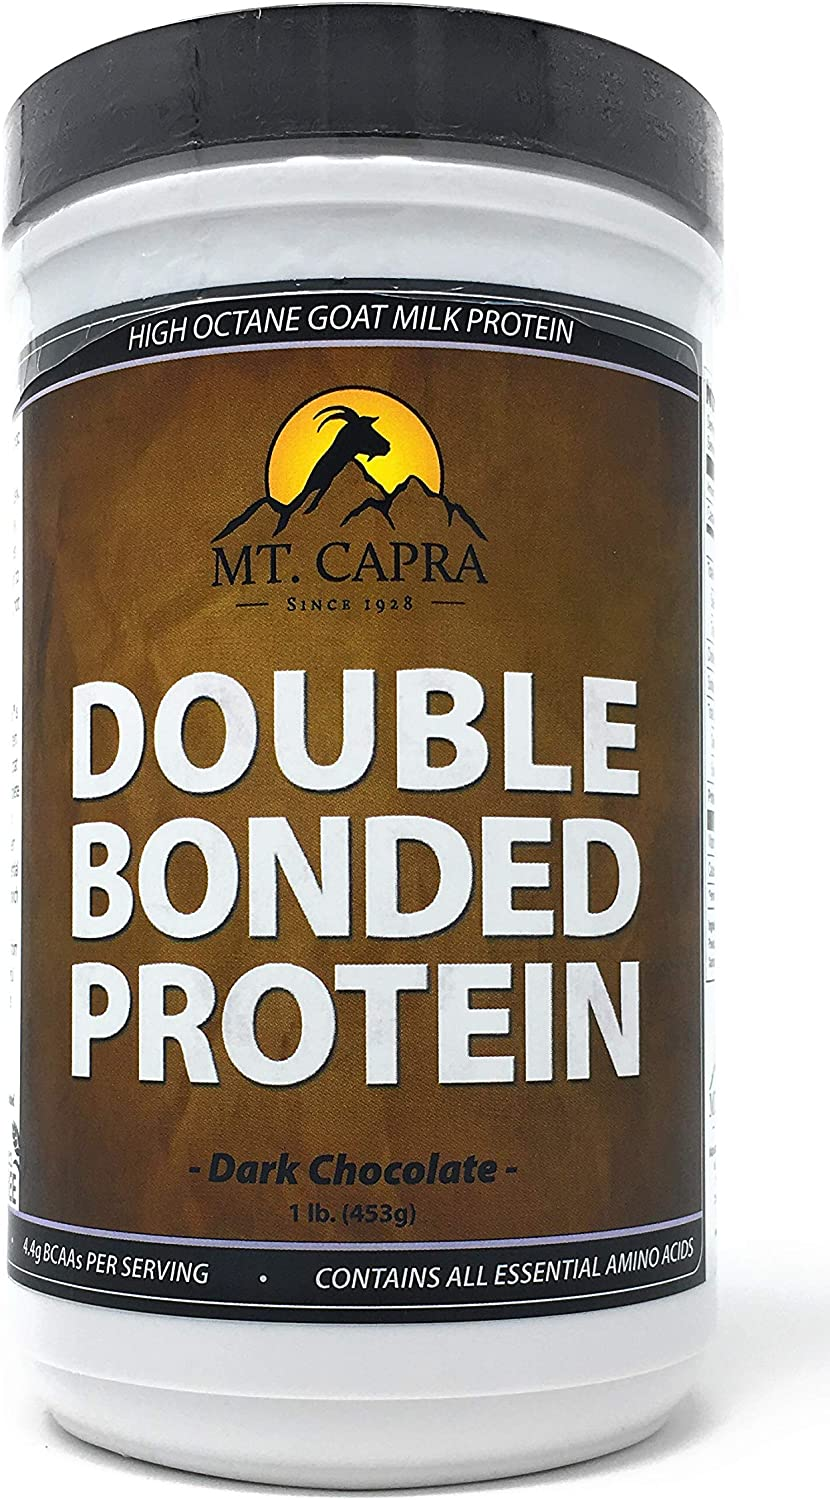 MT. CAPRA SINCE 1928 Double Bonded Protein – Dark Chocolate – 1 Lb, 1 Pound